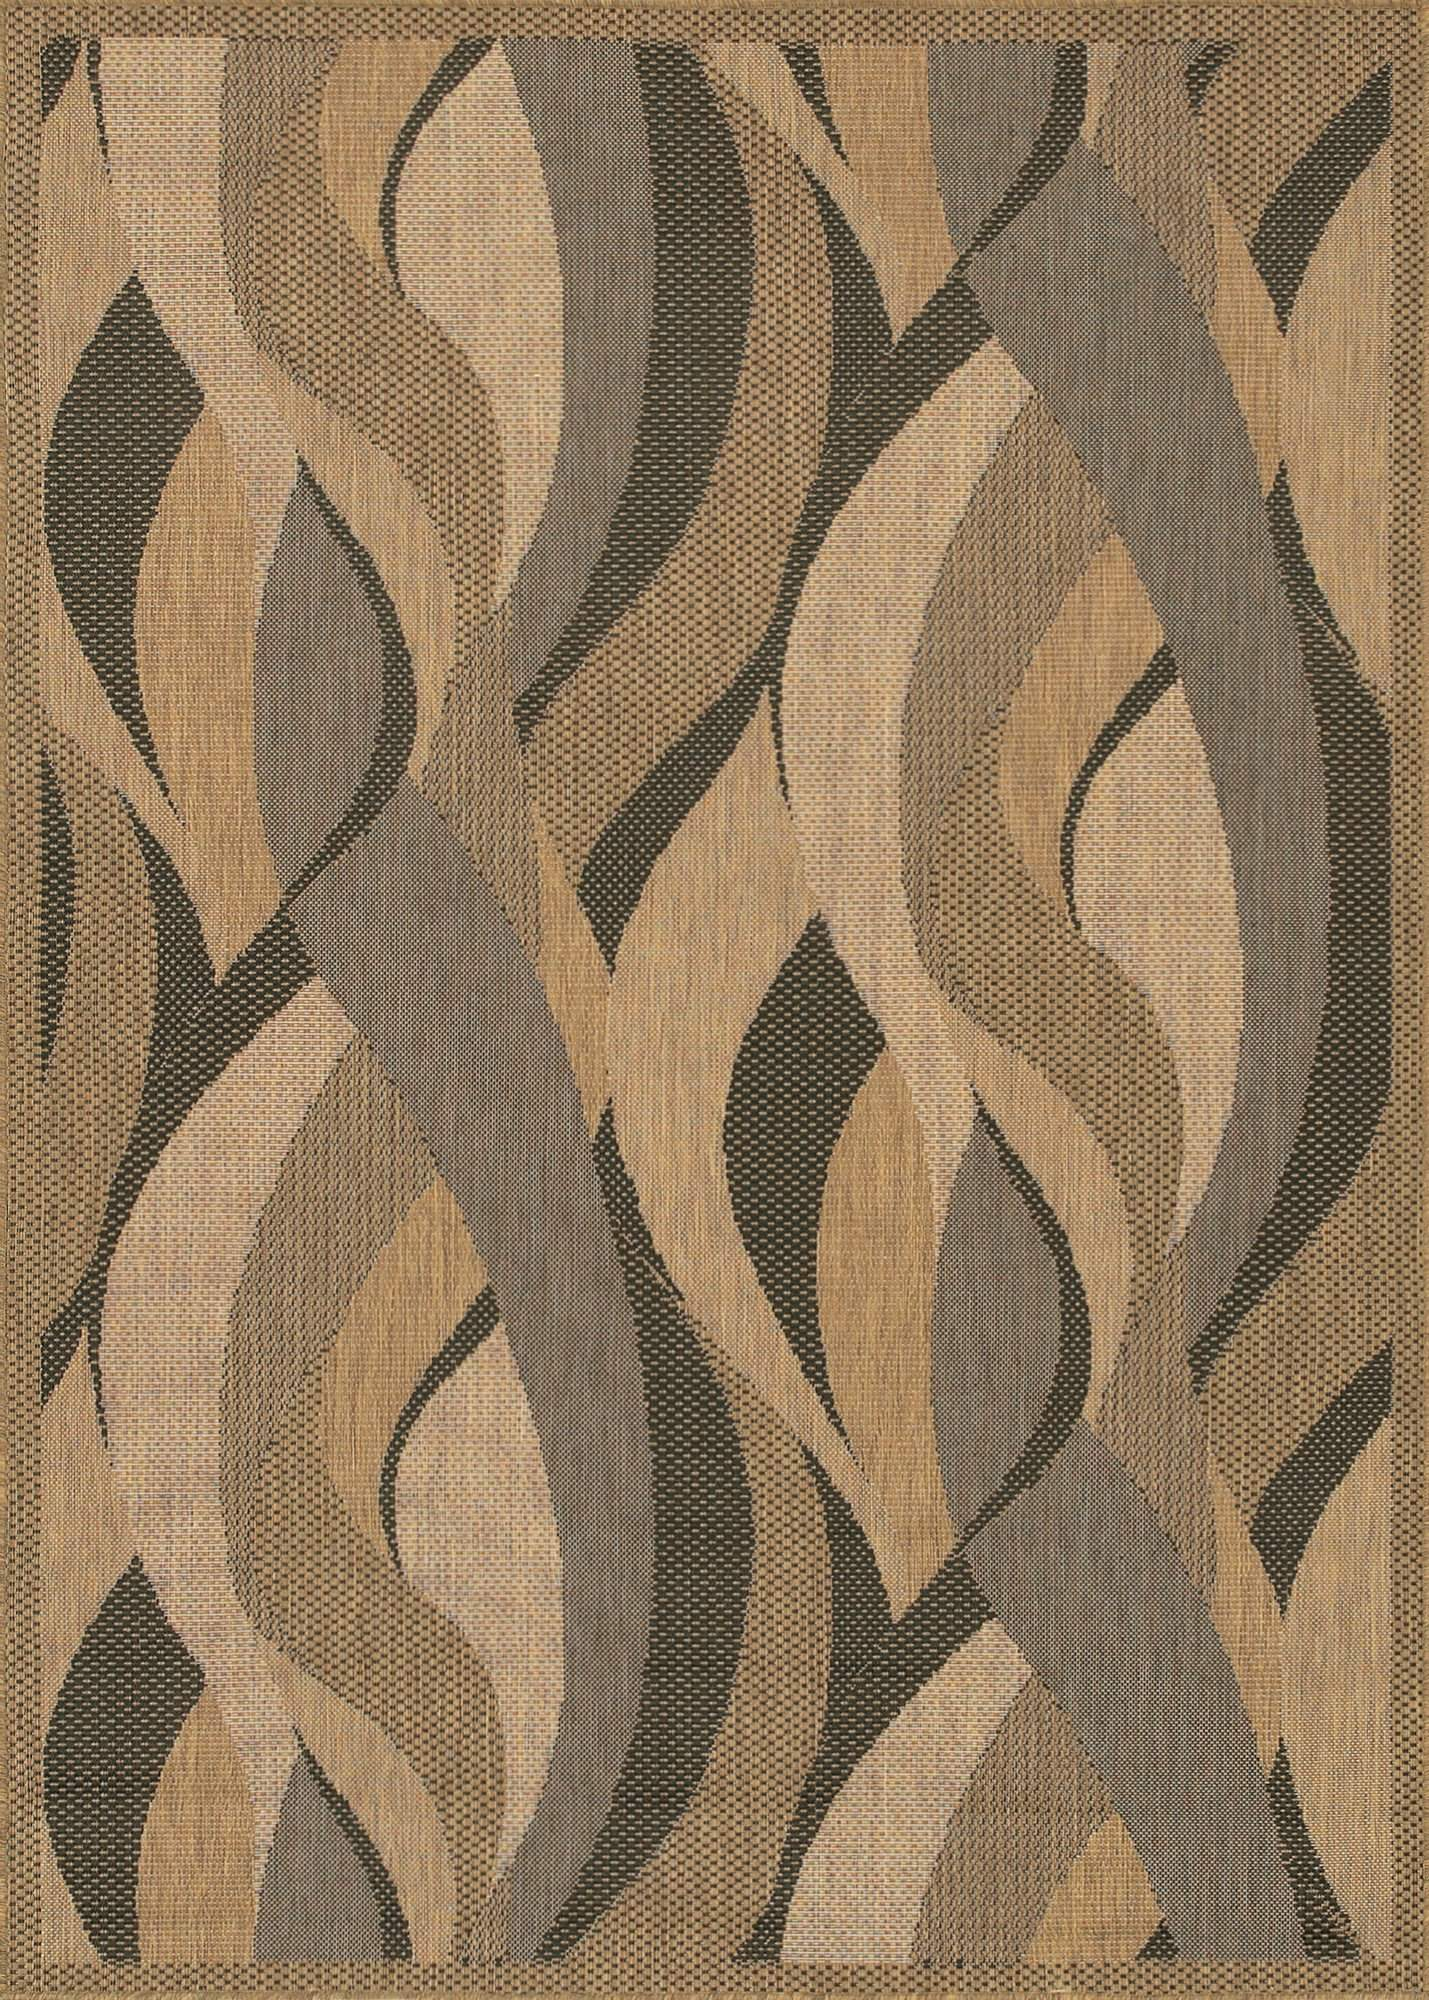 Recife Seagrass Indoor Outdoor Area Rug Collection